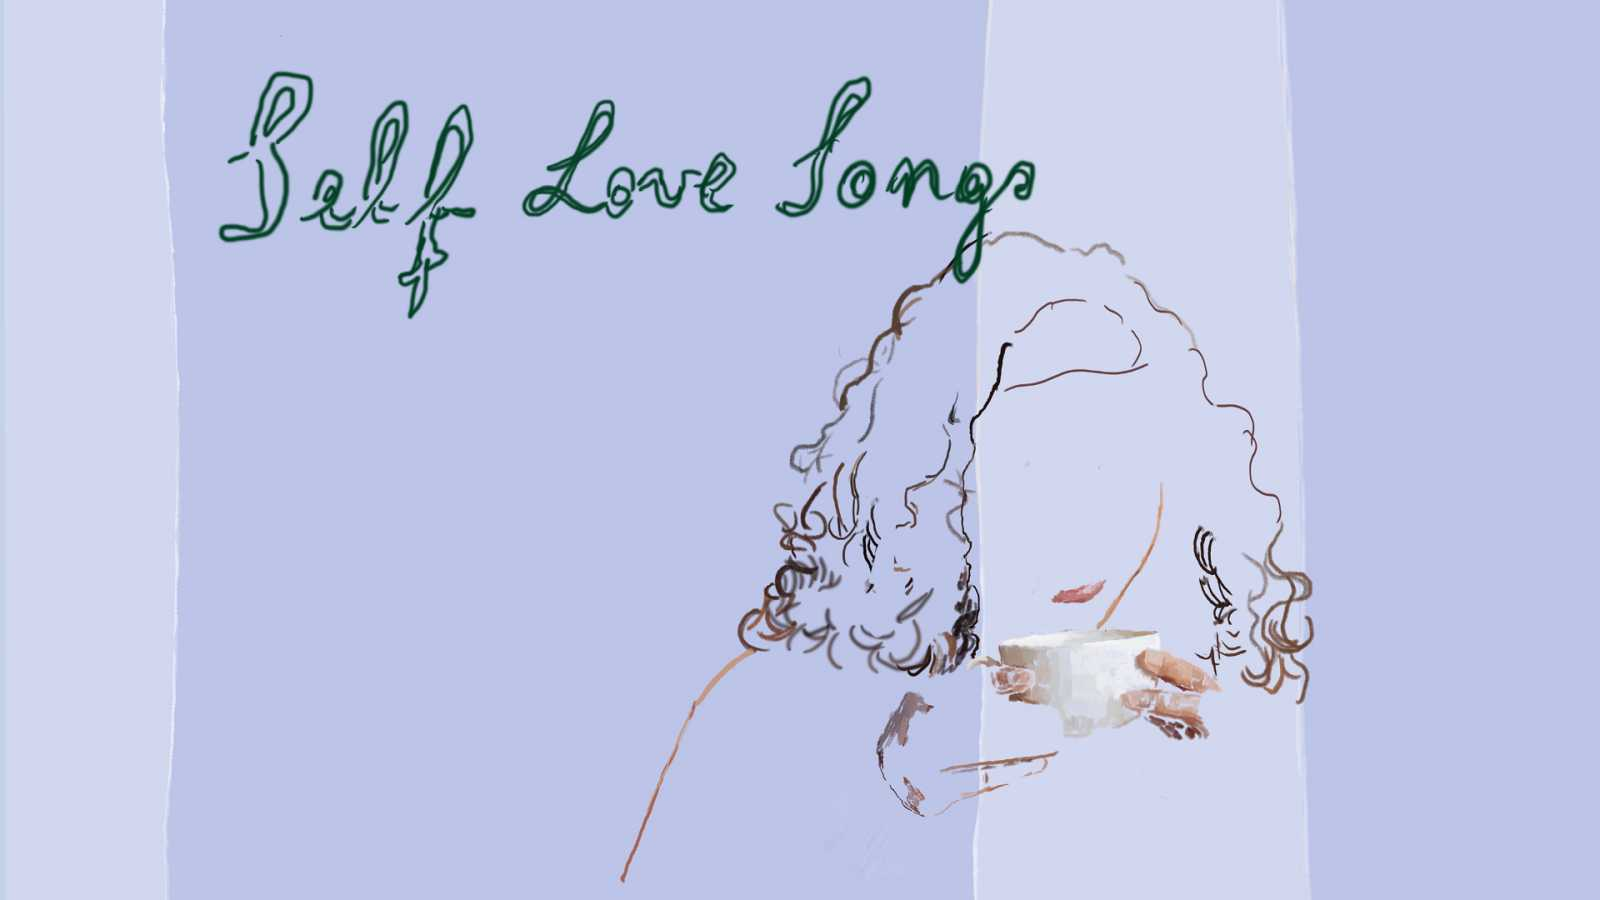 Resonancias - Self Love Songs - 20/05/20 - escuchar ahora